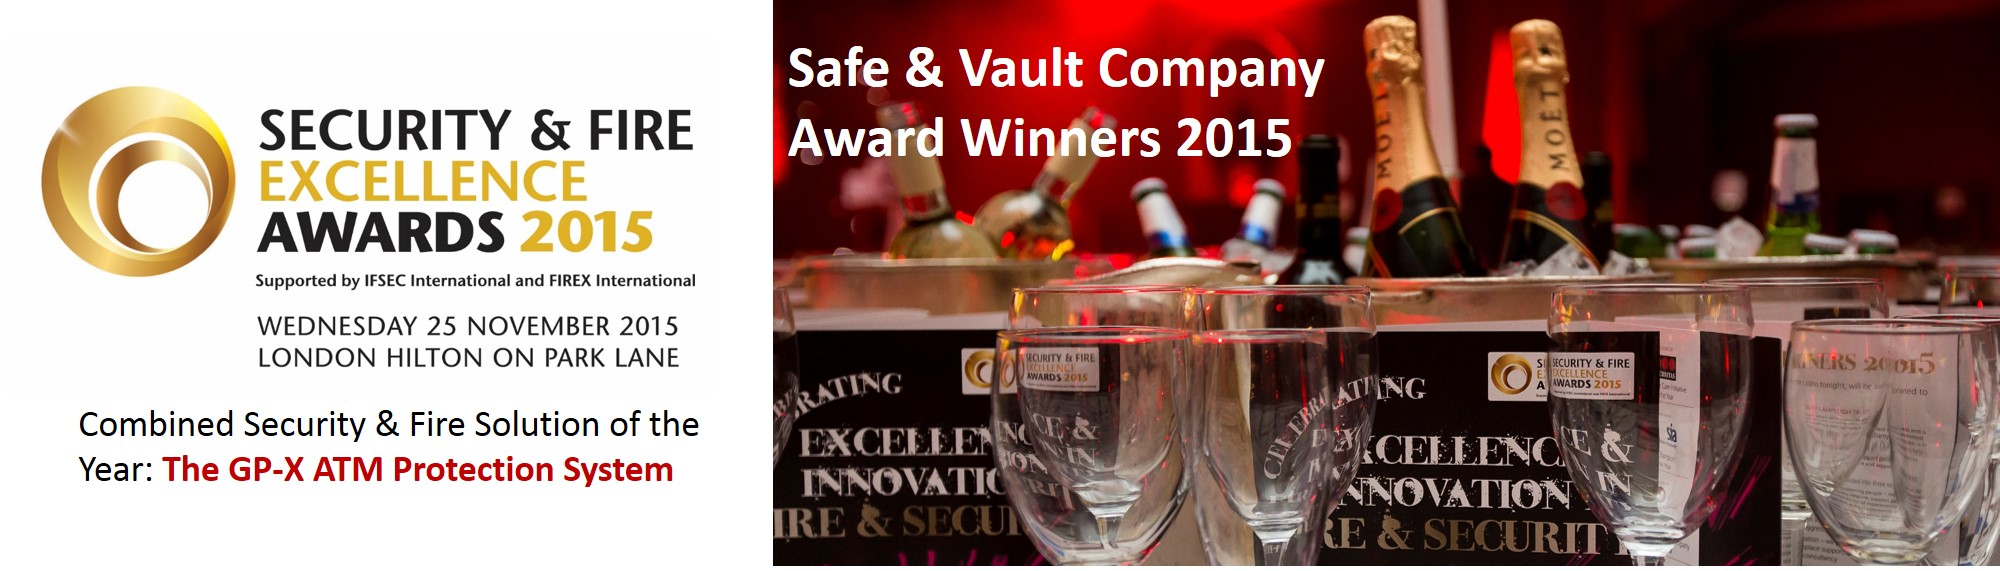 ifsec_security_winners_2015